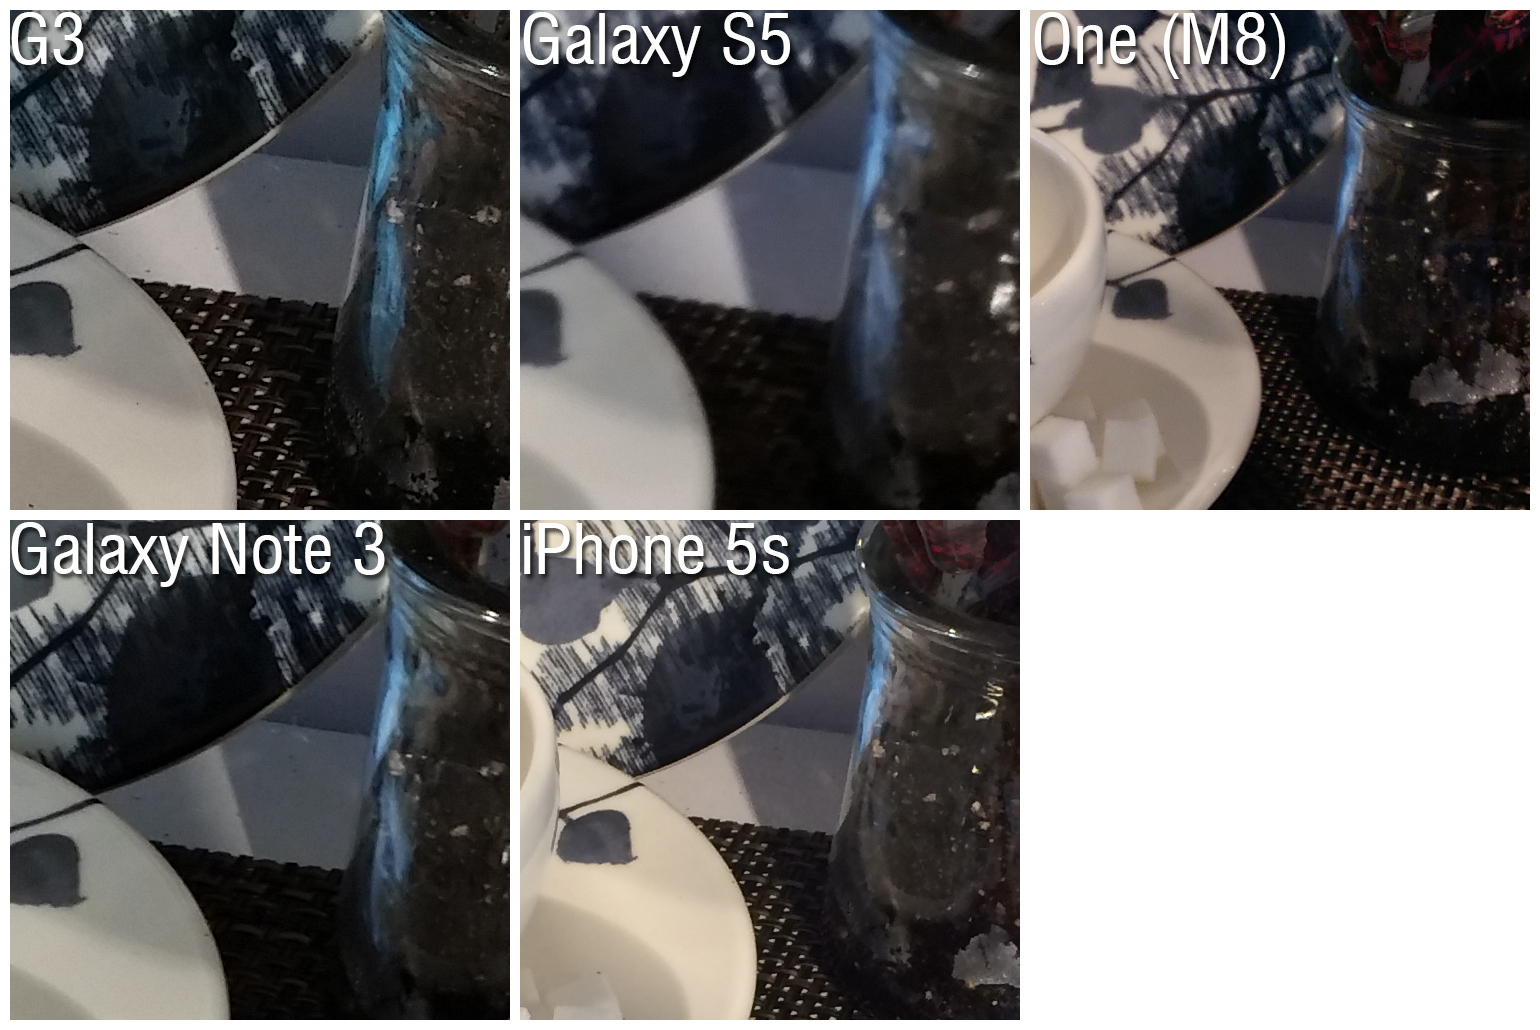 htc one m8 camera vs iphone 5s. lg g3 vs galaxy s5 note 3 one m8 iphone 5s 2 htc camera iphone